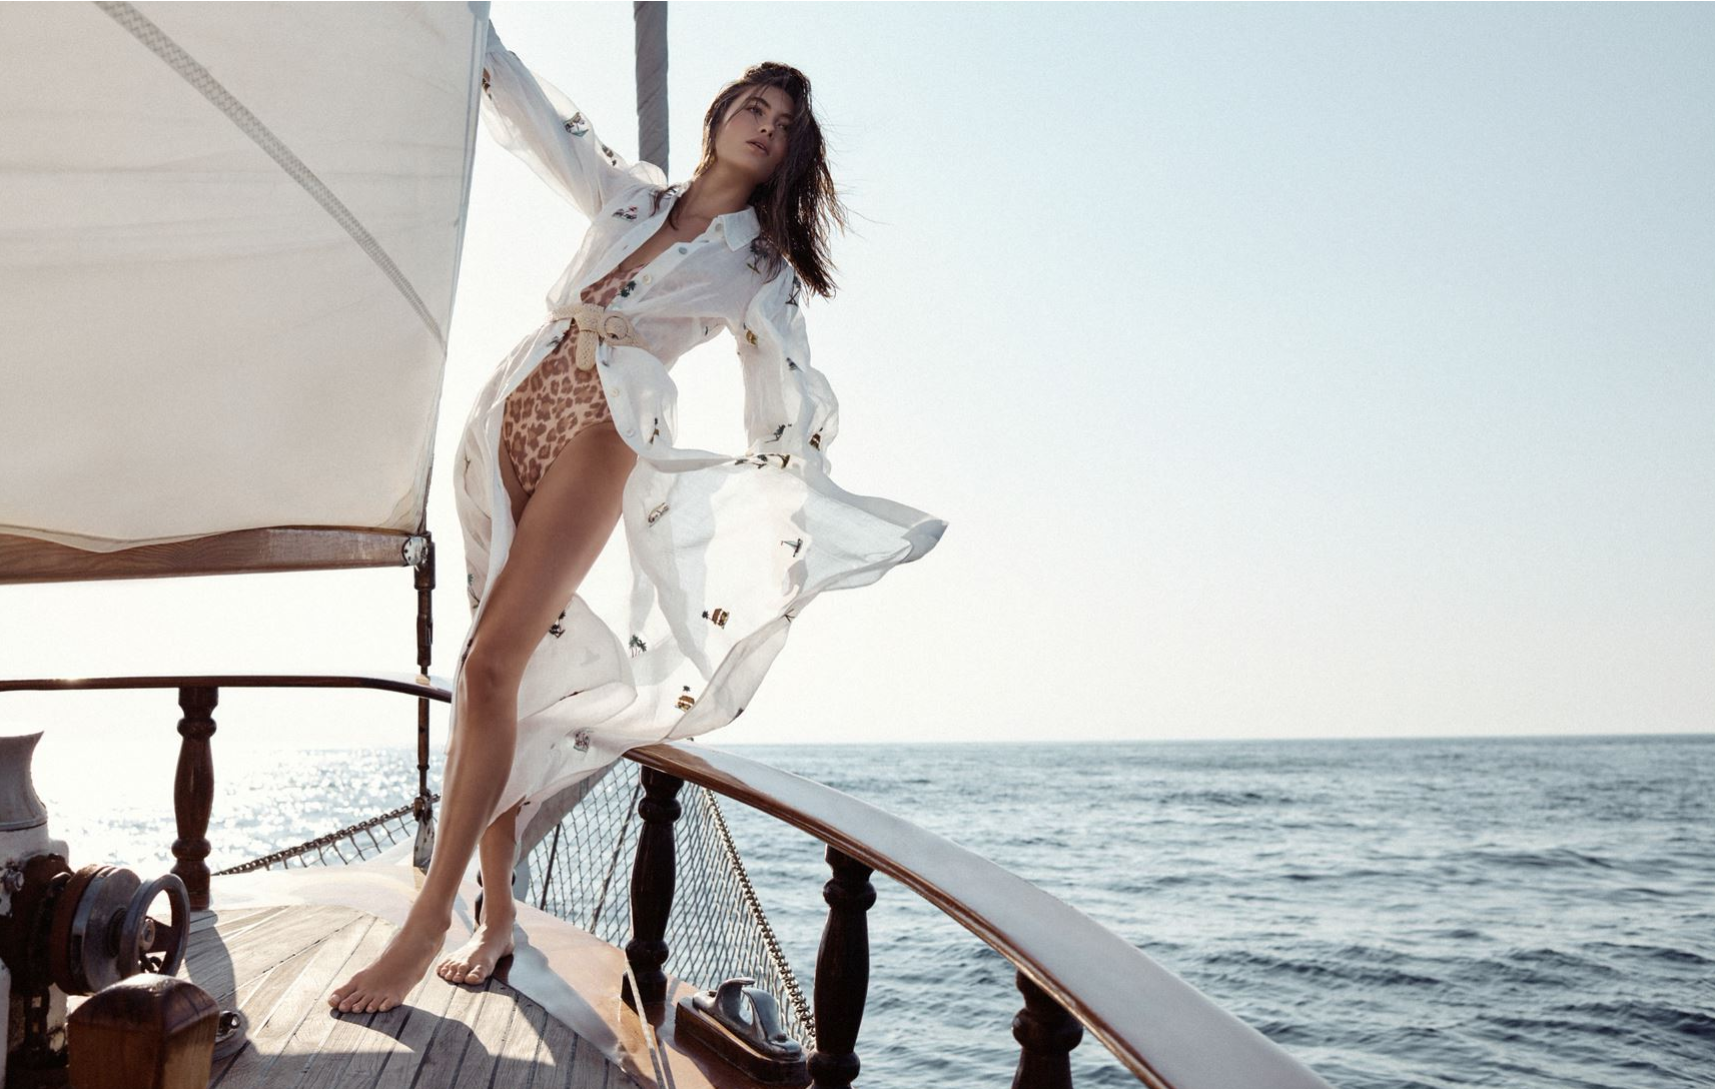 The Summer 2020 Swimsuit Trends to Invest In